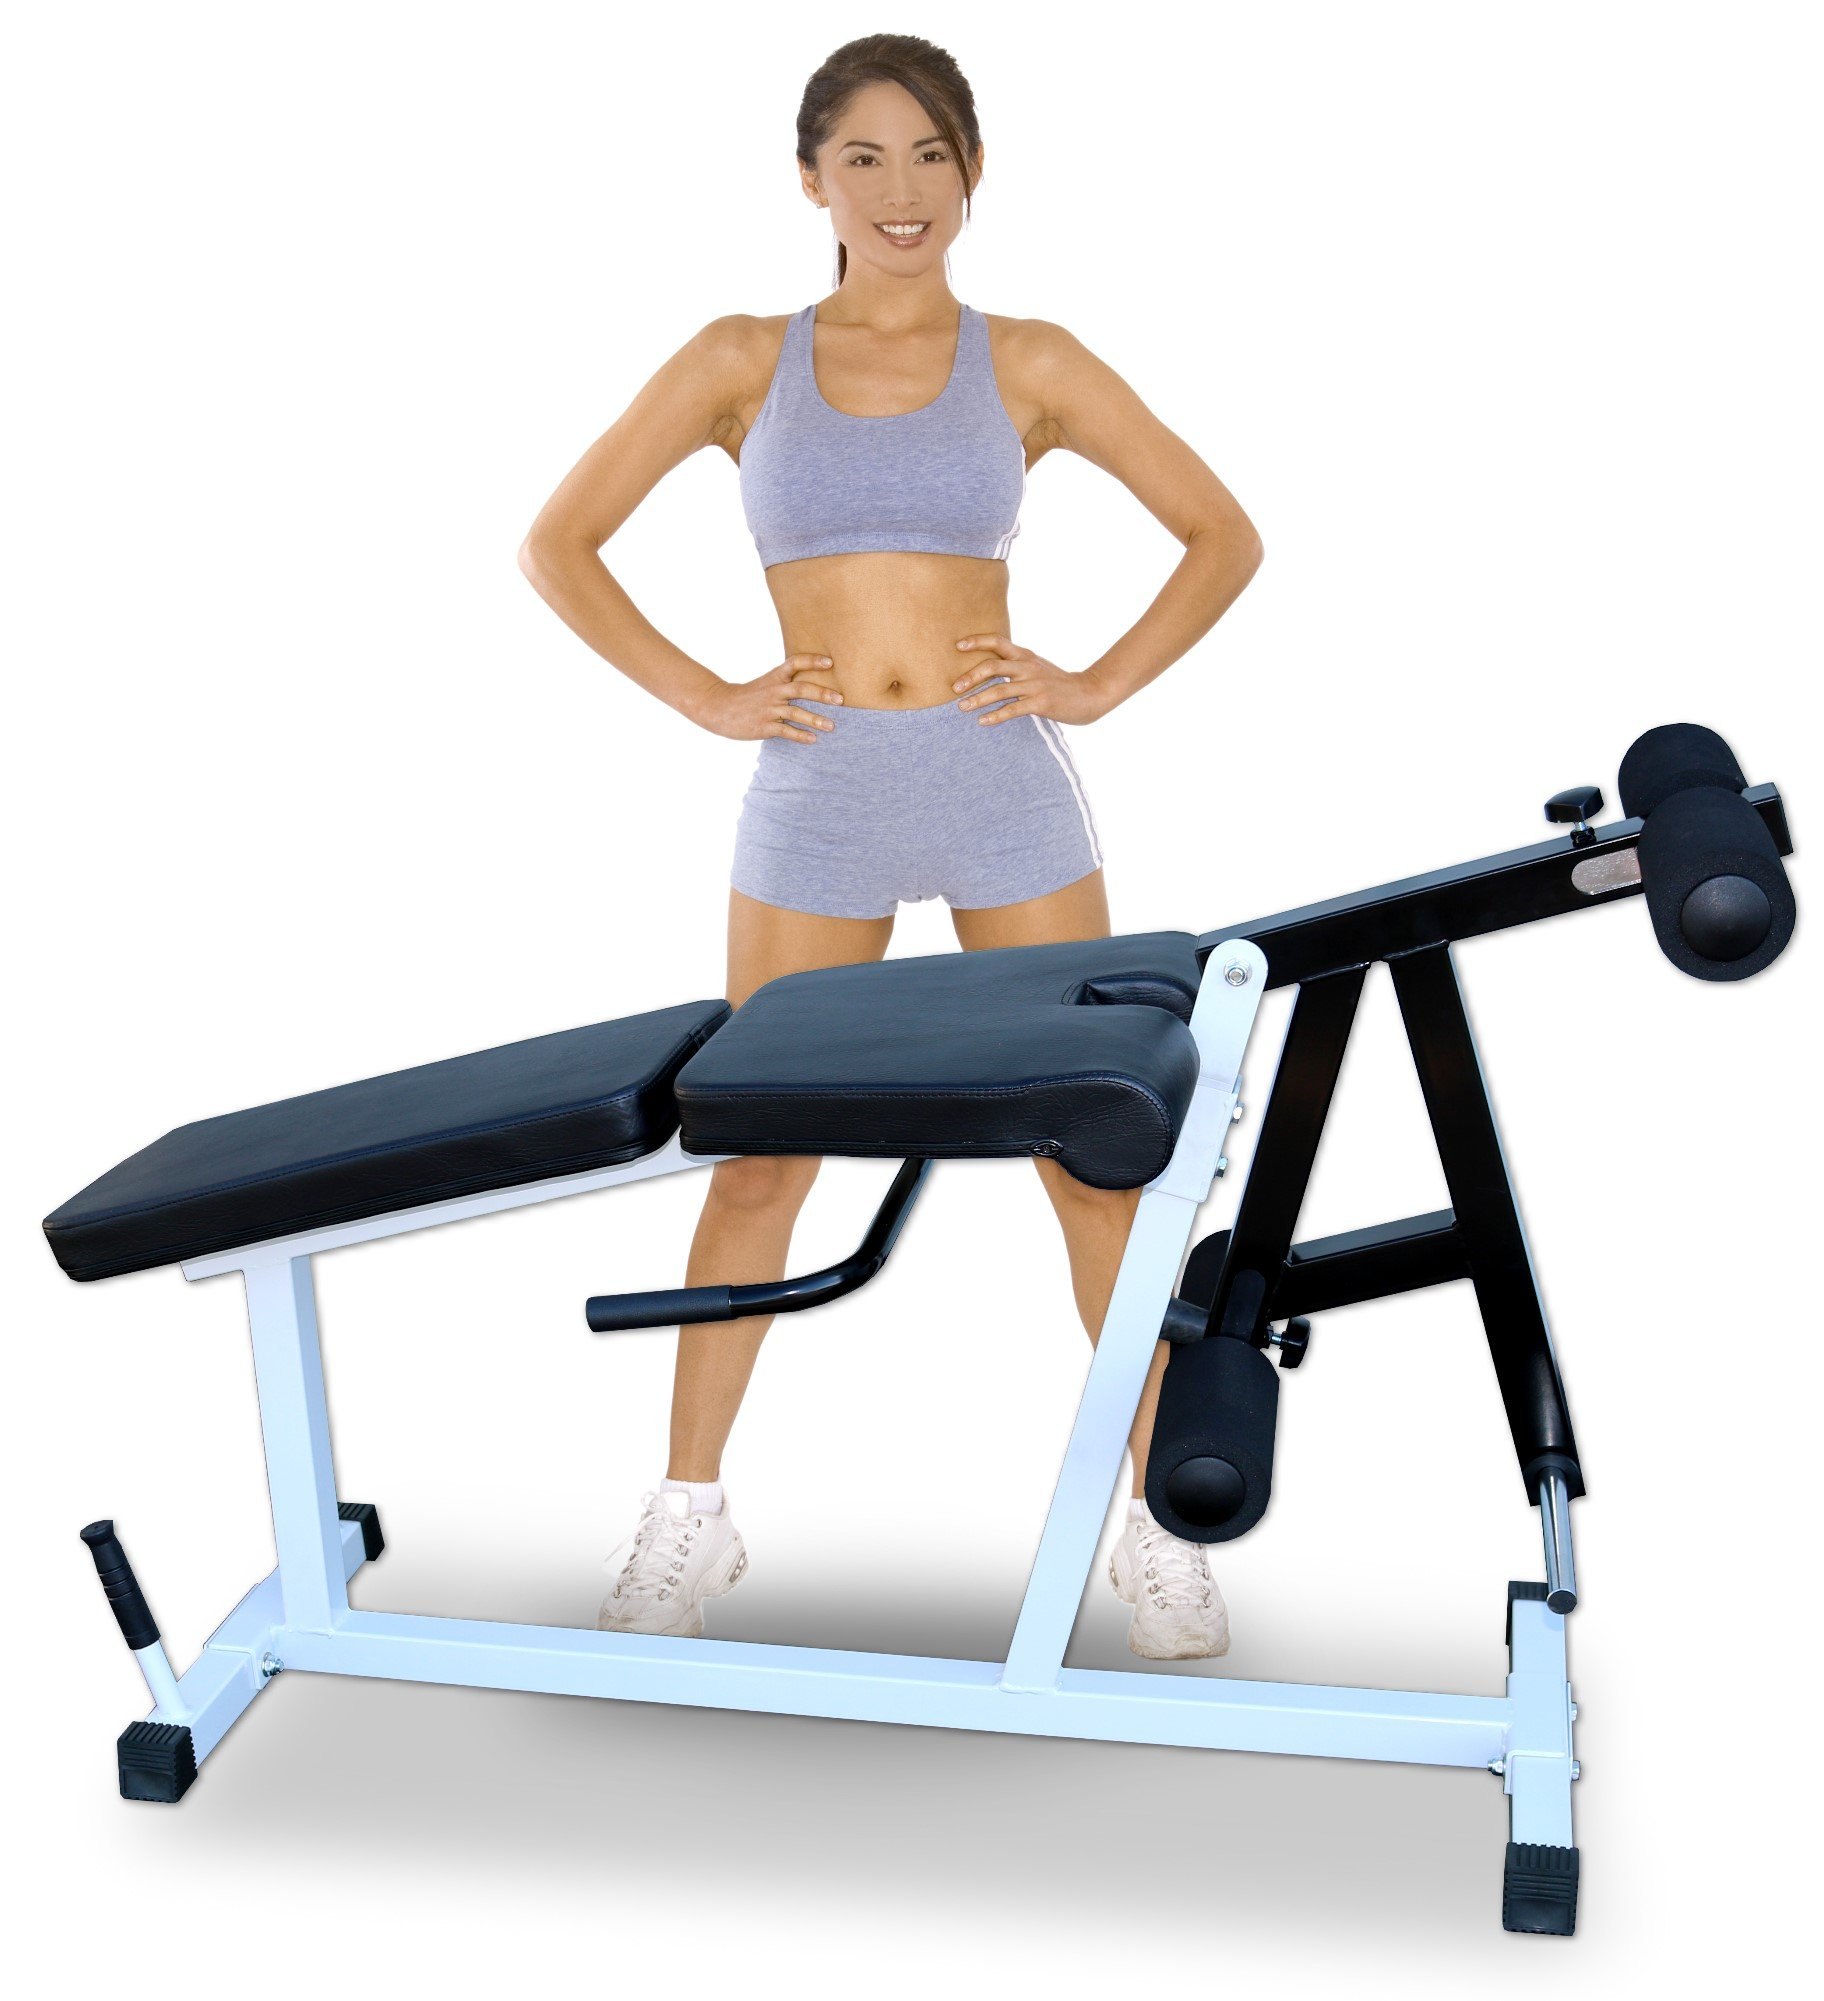 Deltech Fitness Leg Extension / Leg Curl Machine by Deltech Fitness